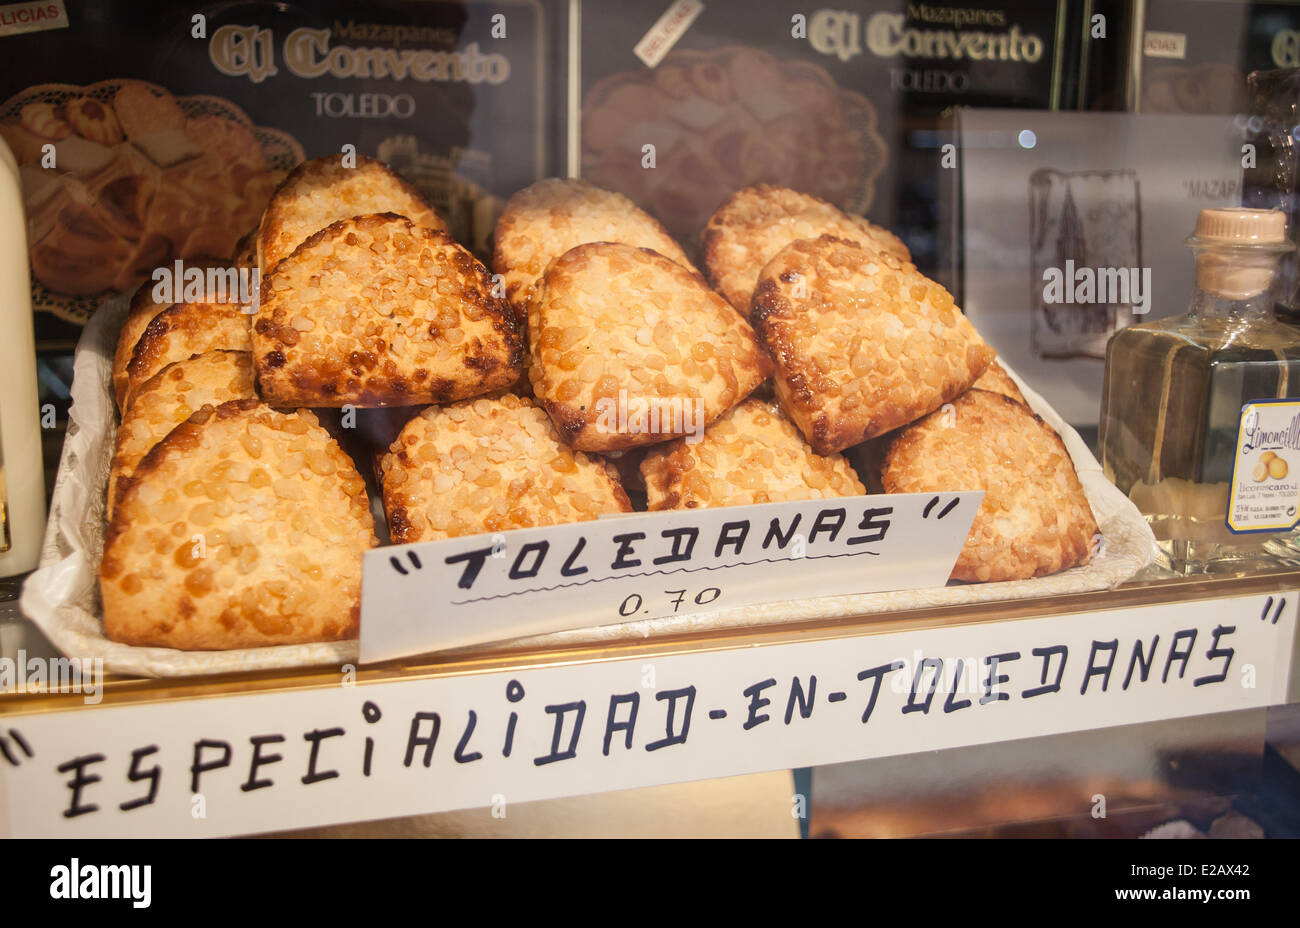 Spain, Castilla La Mancha, Toledo, historical center listed as World Heritage by UNESCO, toledanas, specialty pastry - Stock Image